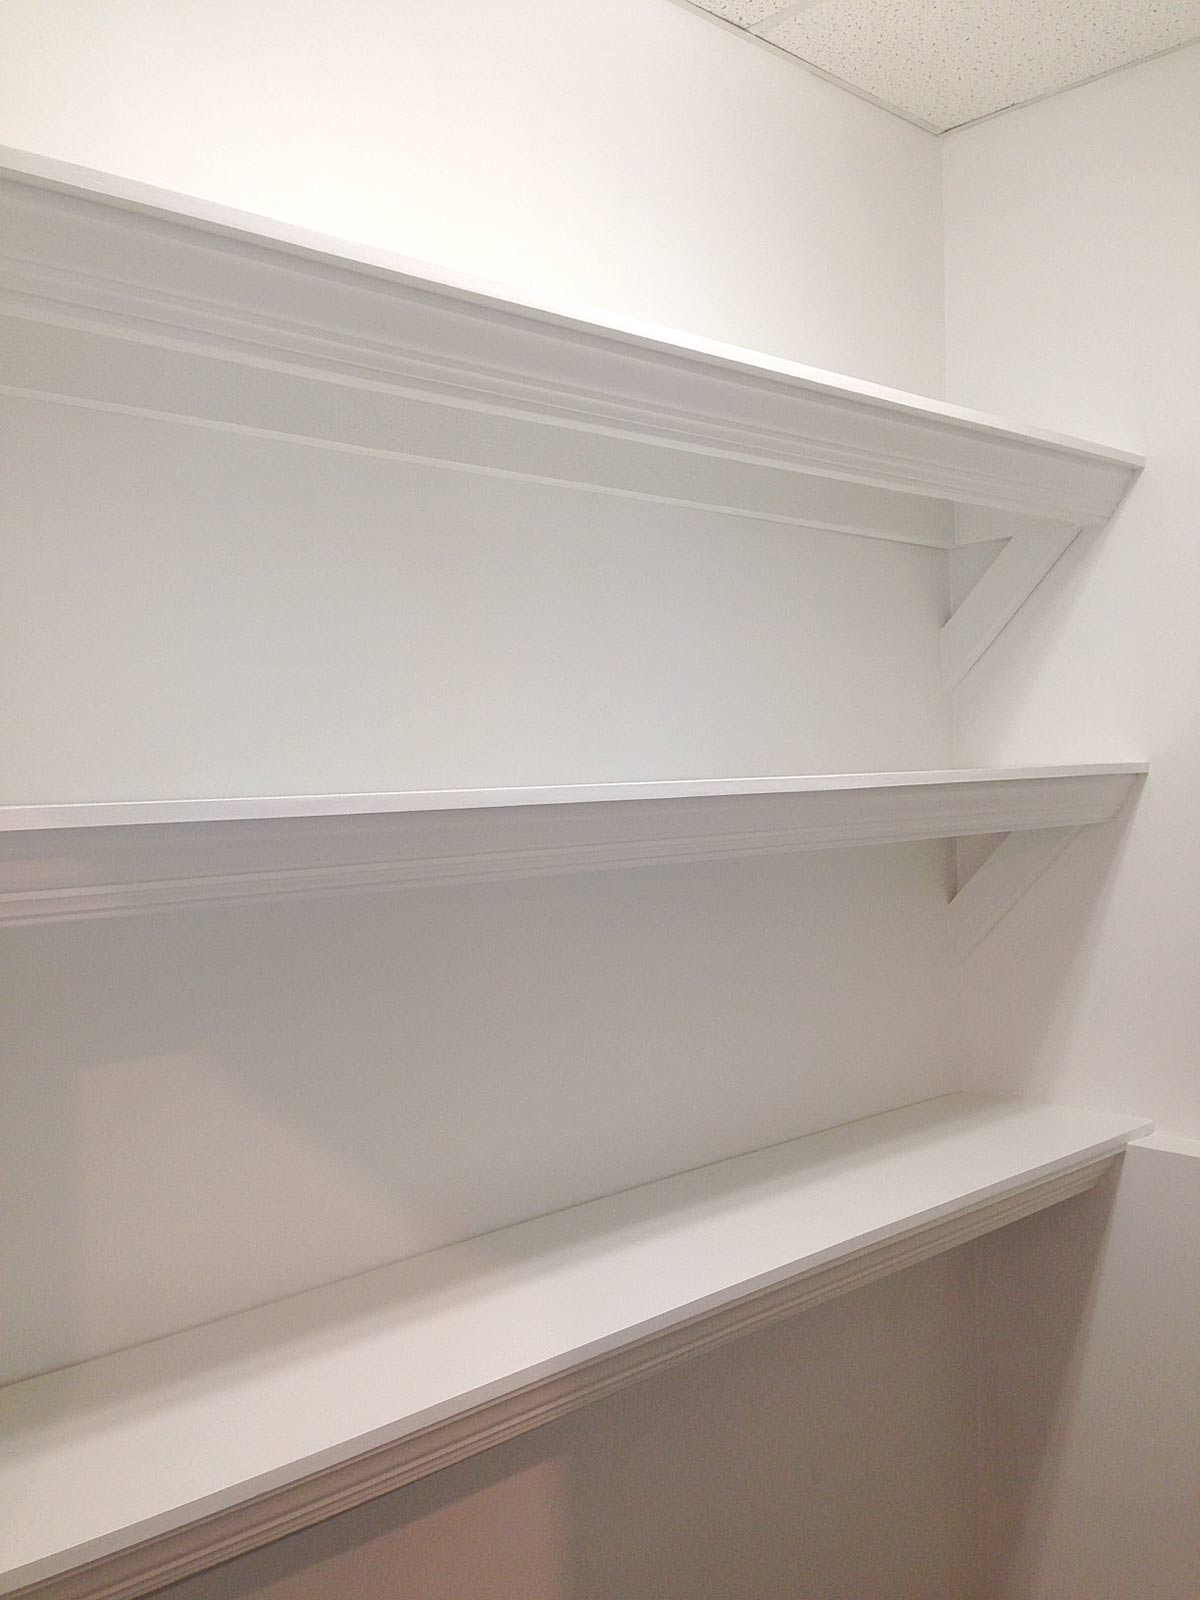 Finished-shelves-2